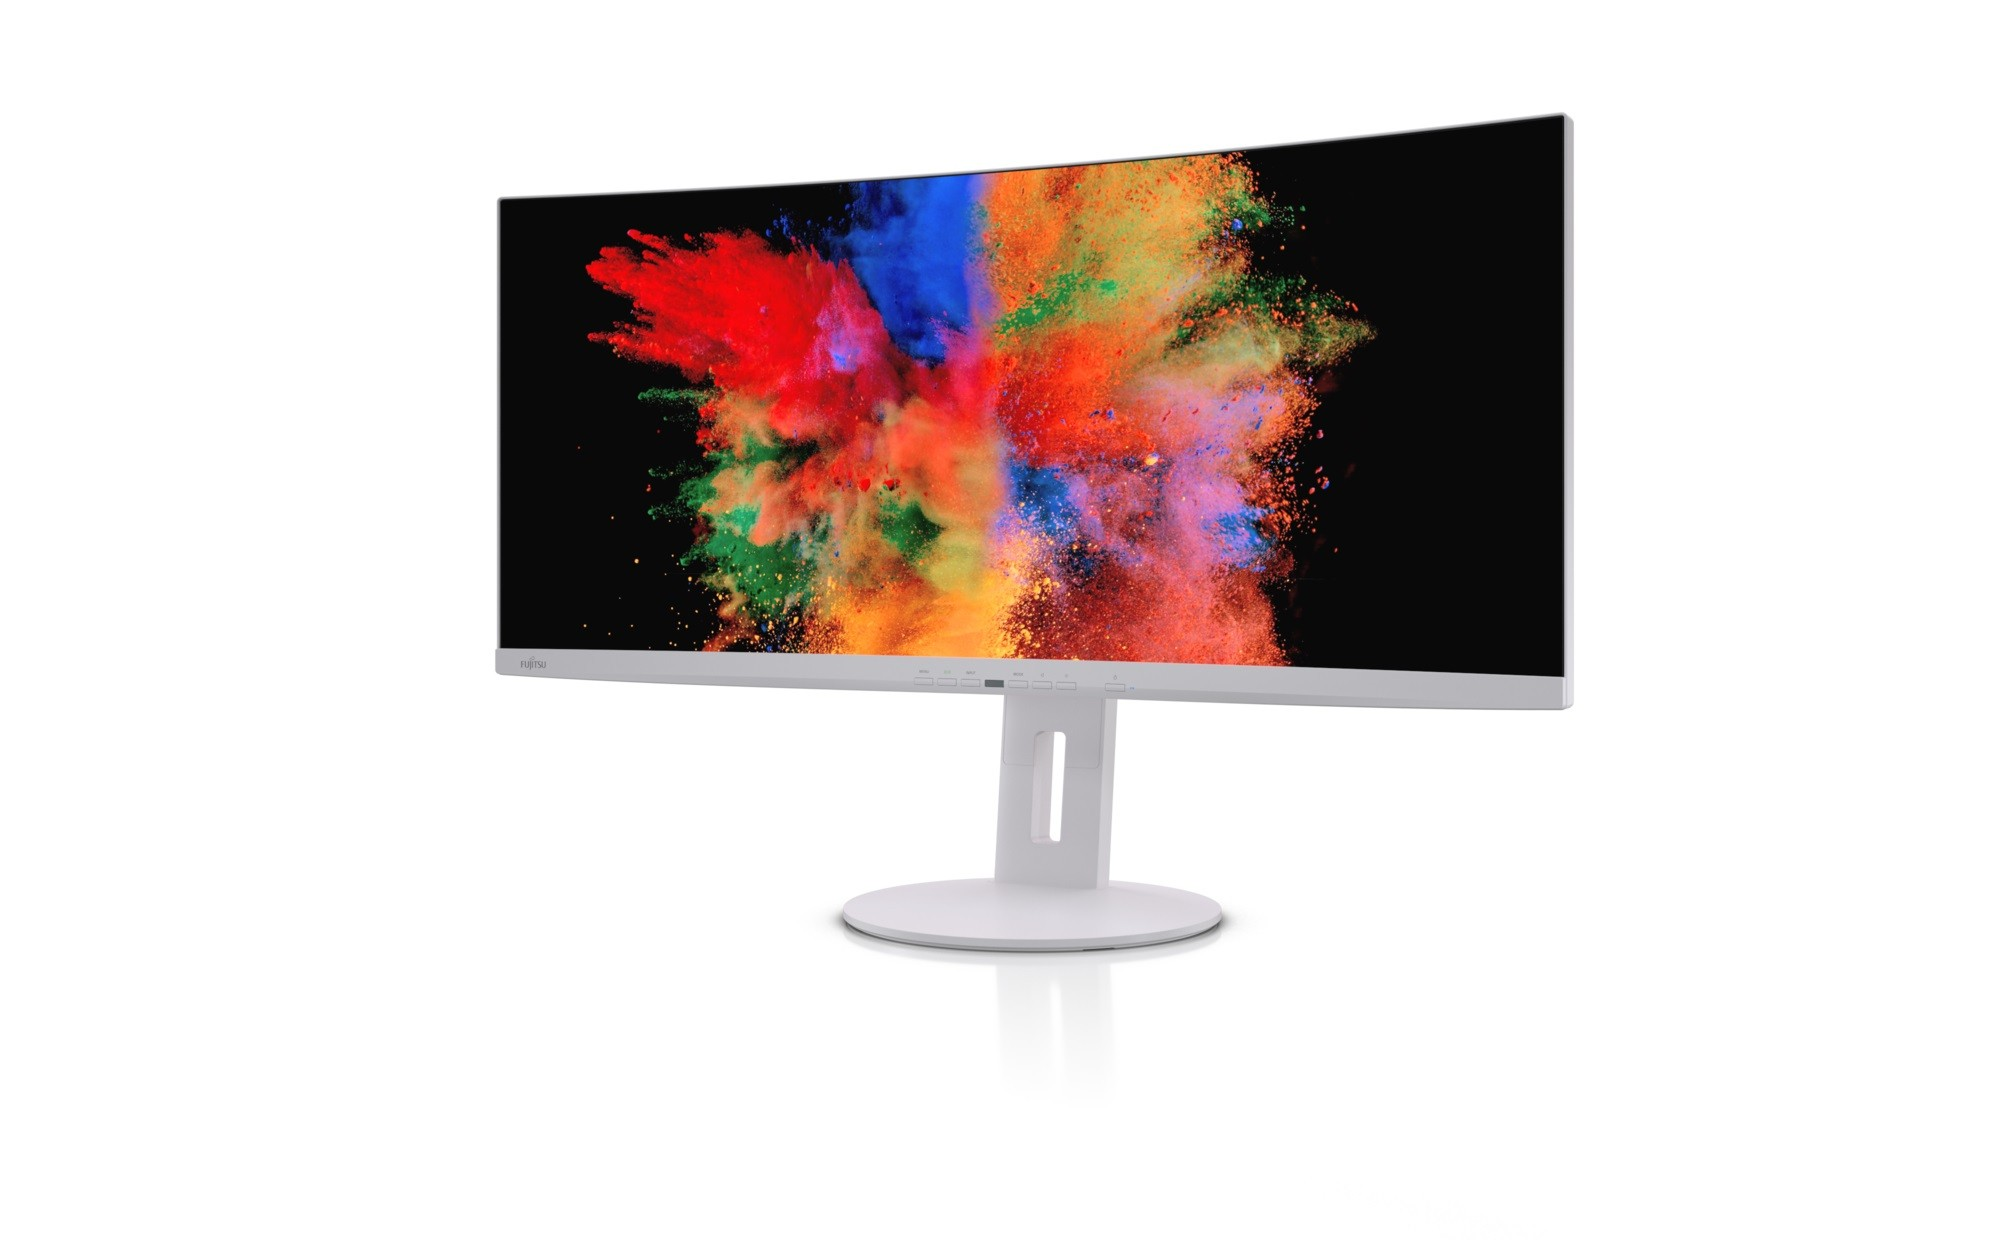 """Fujitsu Displays P34-9 UE Curved 86,6 cm (34.1"""") 3440 x 1440 Pixels UltraWide Quad HD LED Marble Grey, Incl. integrated USB-C Portreplicator with power delivery & KVM function"""